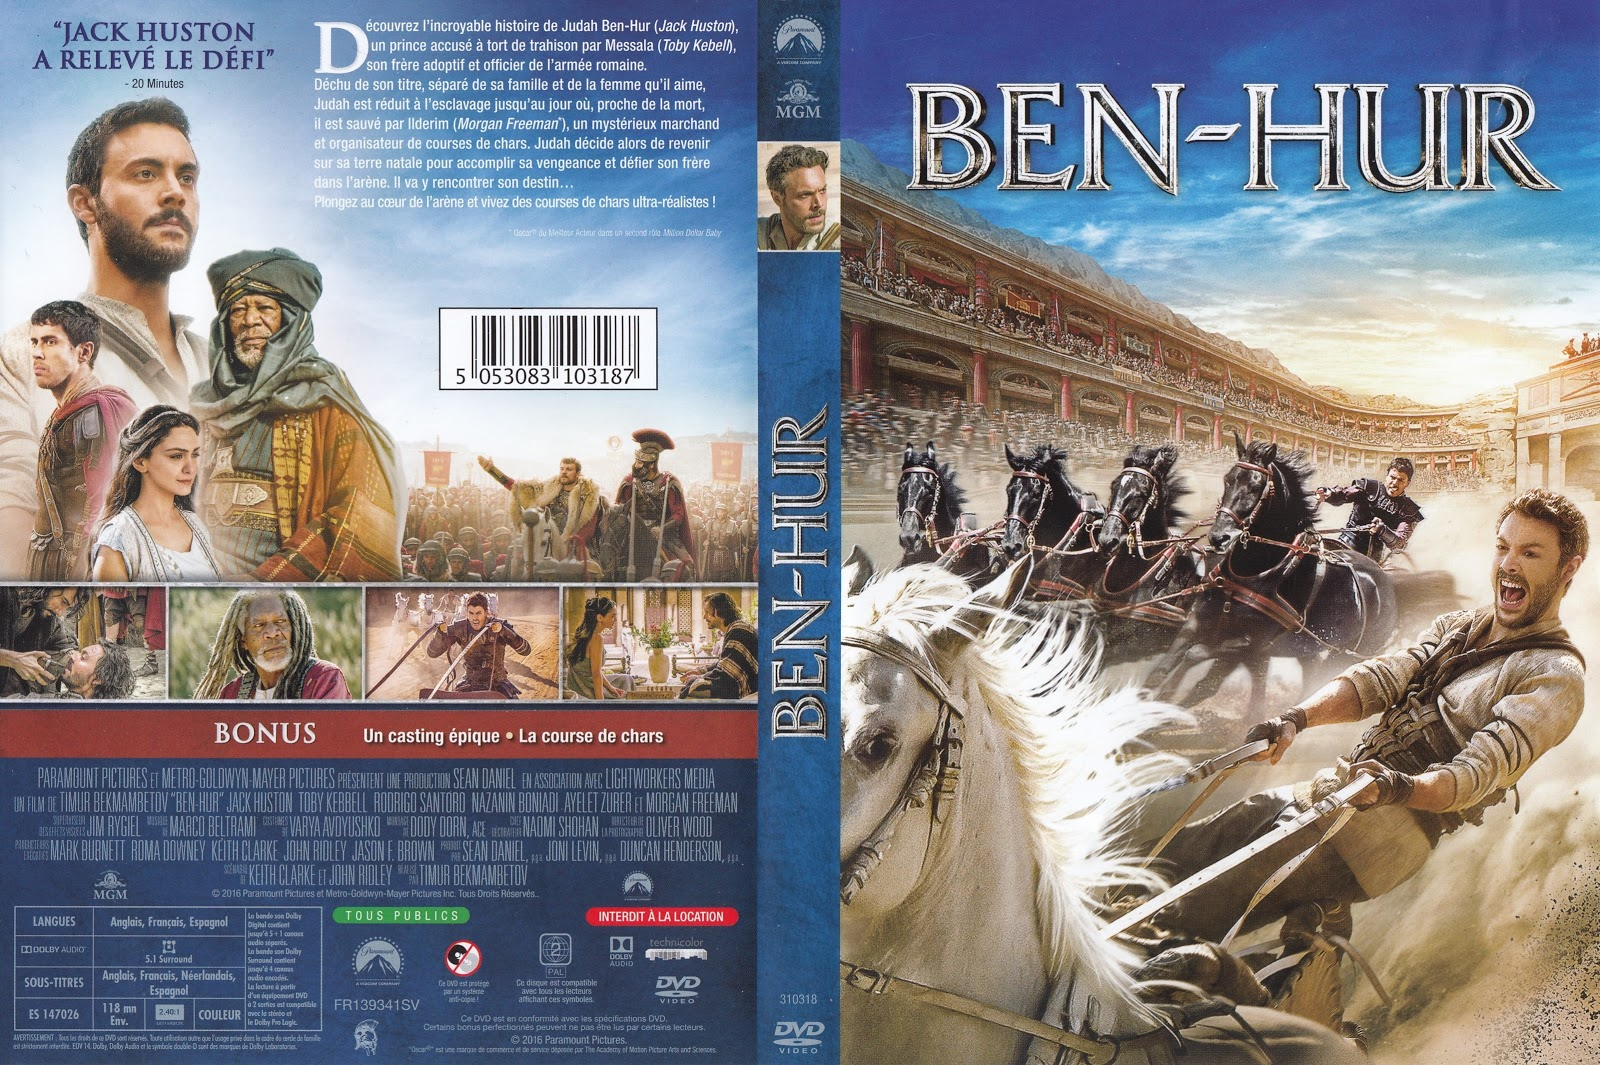 ben hur christian personals Ben-hur won 11 academy awards including best picture after its release in 1959 william wyler directed this mammoth production.